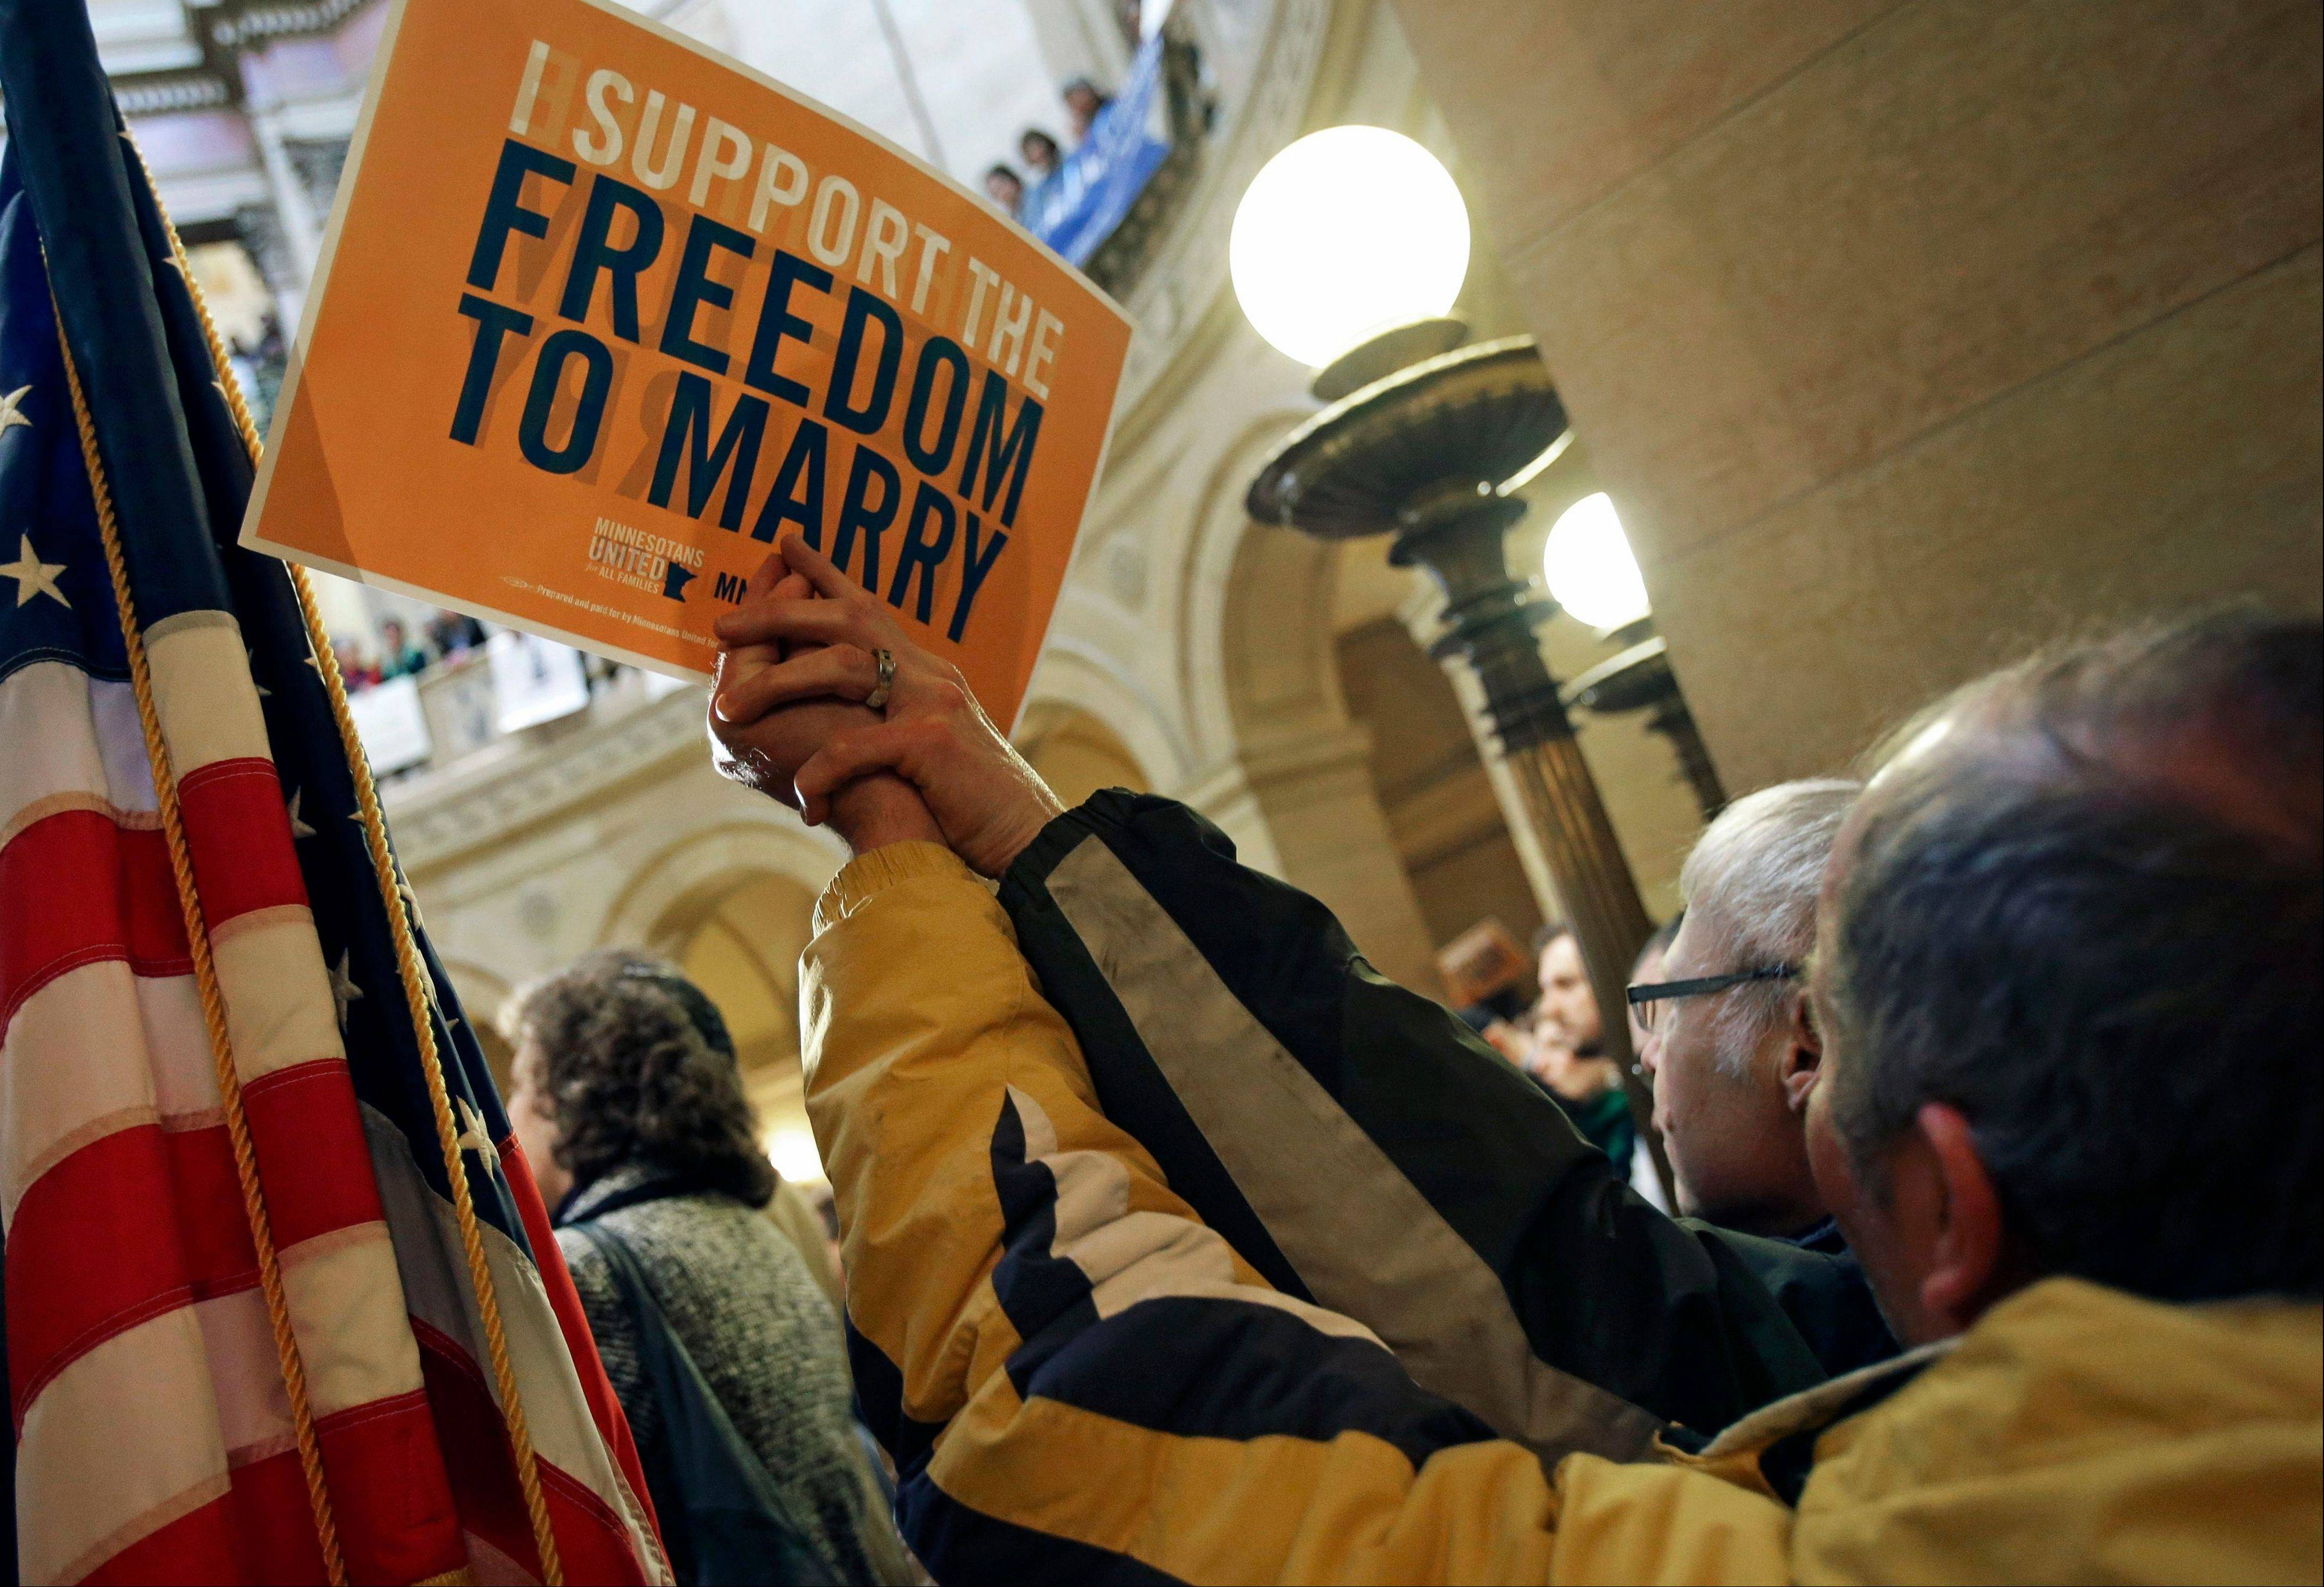 Supporters of gay marriage call for Minnesota lawmakers to legalize gay marriage at the State Capitol in St. Paul, Minn., Feb. 14.